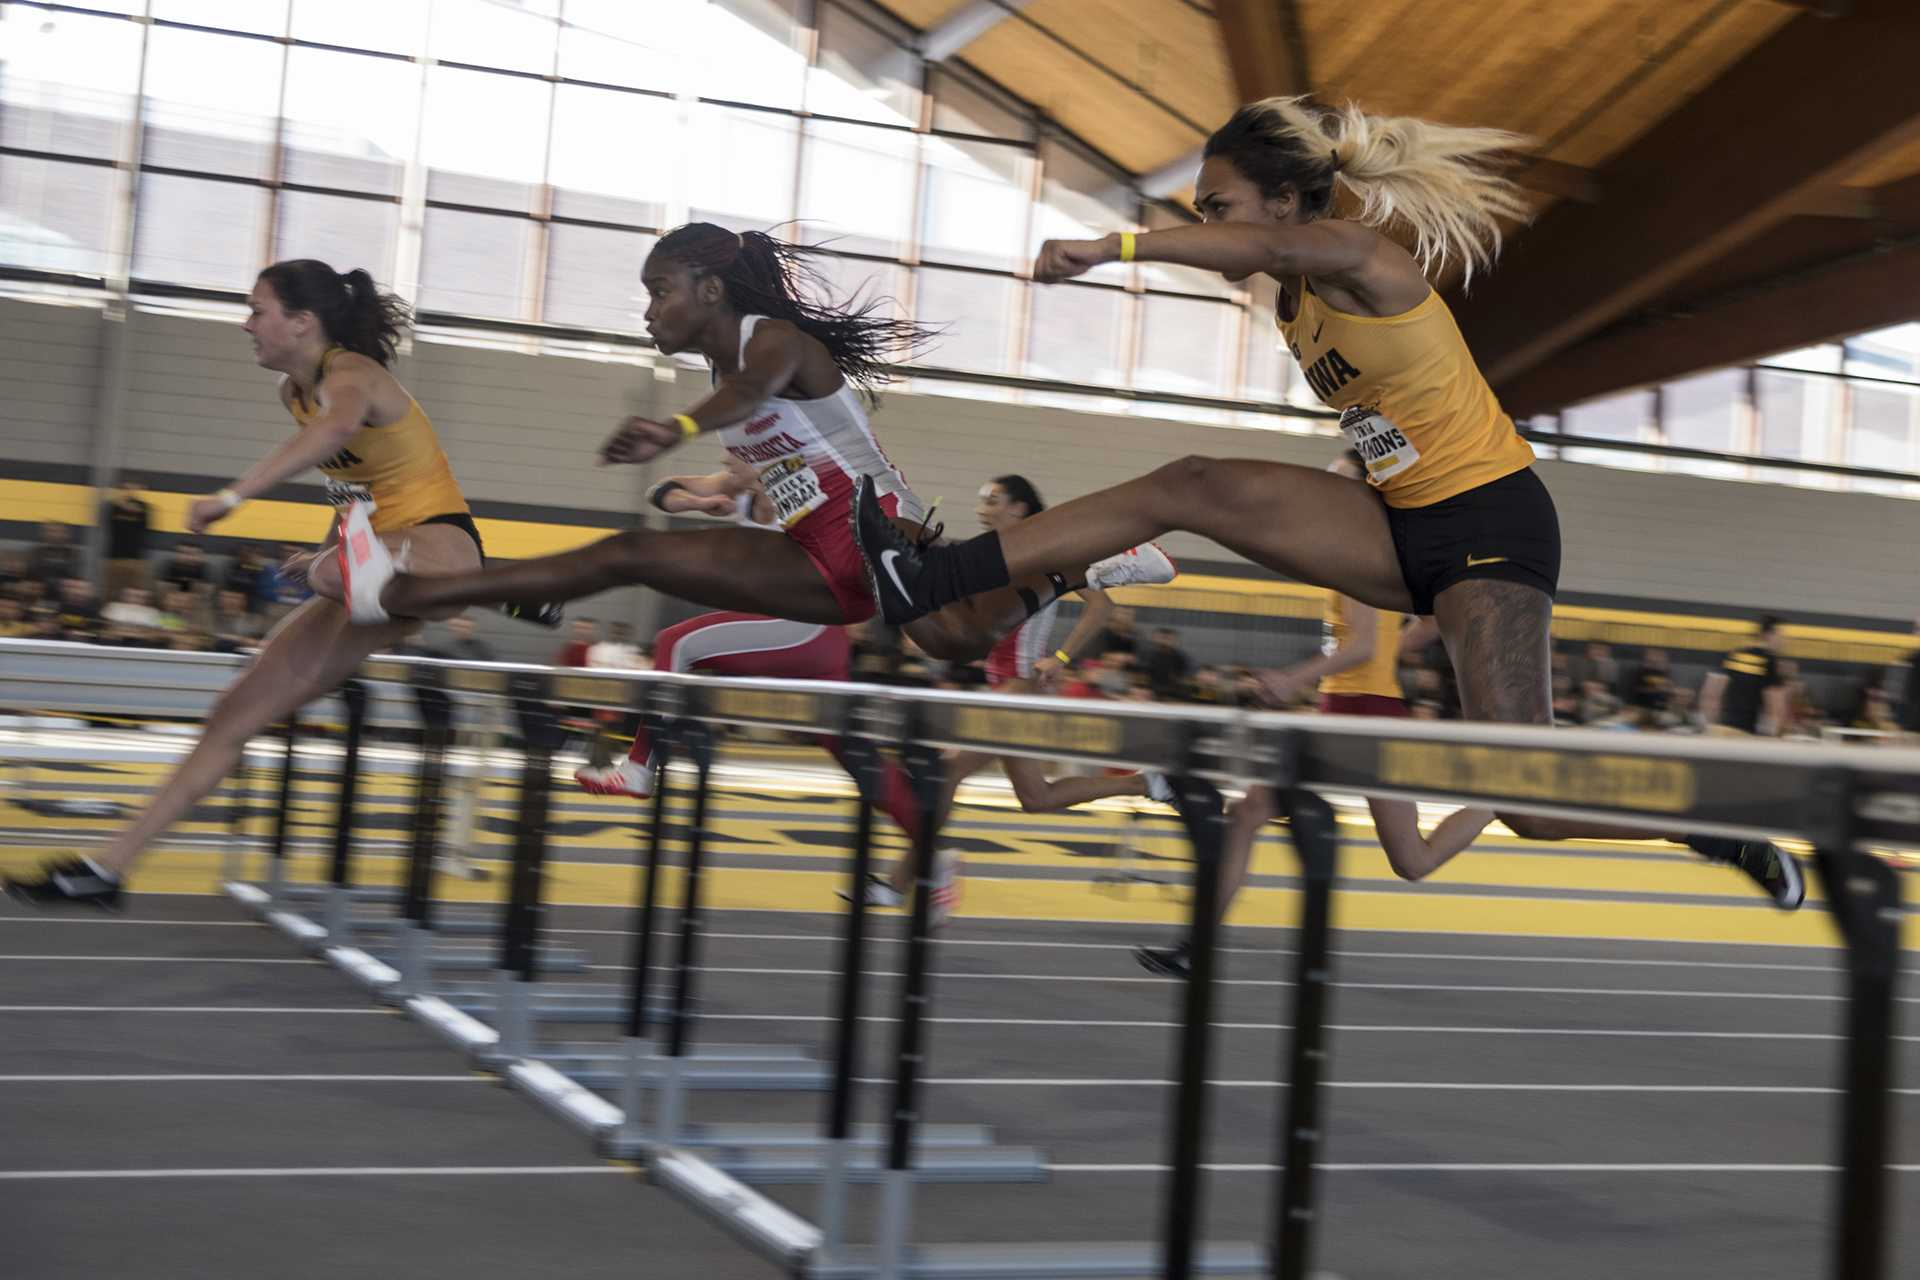 Iowa's Tria Simmons competes in the Women's 60 Meter Hurdles during the Hawkeye Invitational indoor track meet at the Campus Recreation Building on Satuday, Jan. 13, 2017. Simmons finished third with the time of 8.77. The Hawkeyes opened up the season with over 11 titles for the day. (Ben Allan Smith/The Daily Iowan)